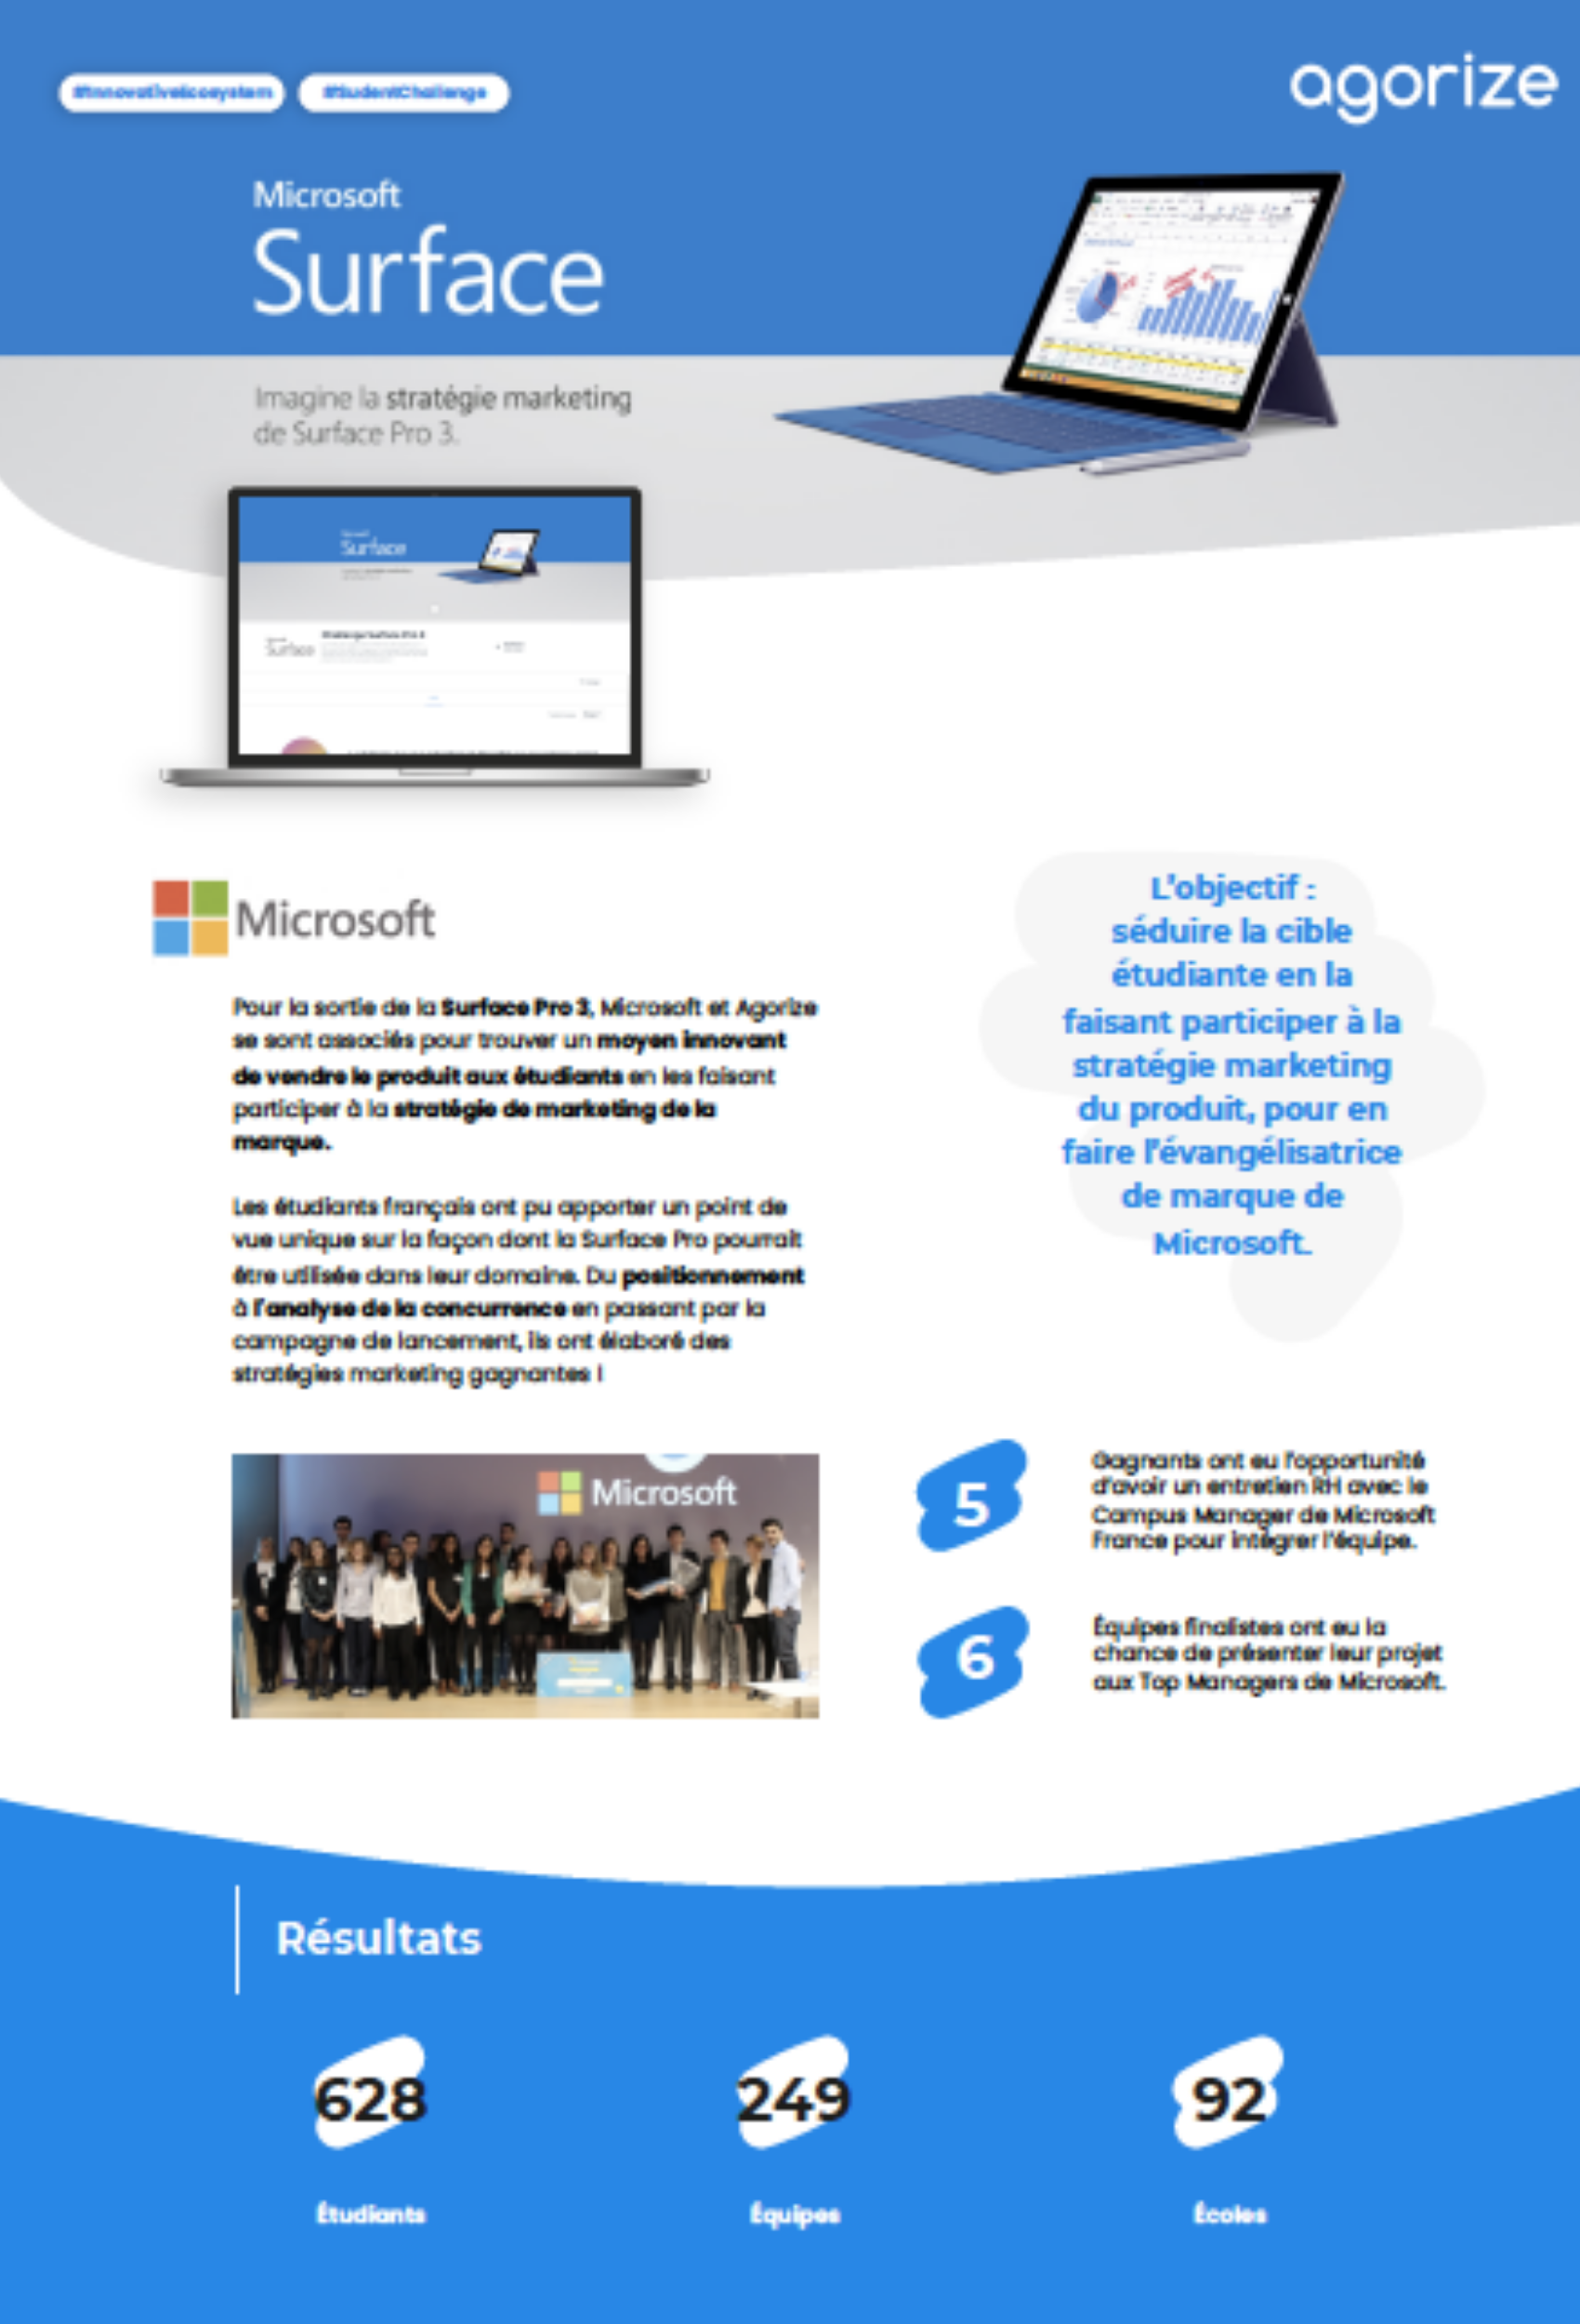 poster microsoft suface uc